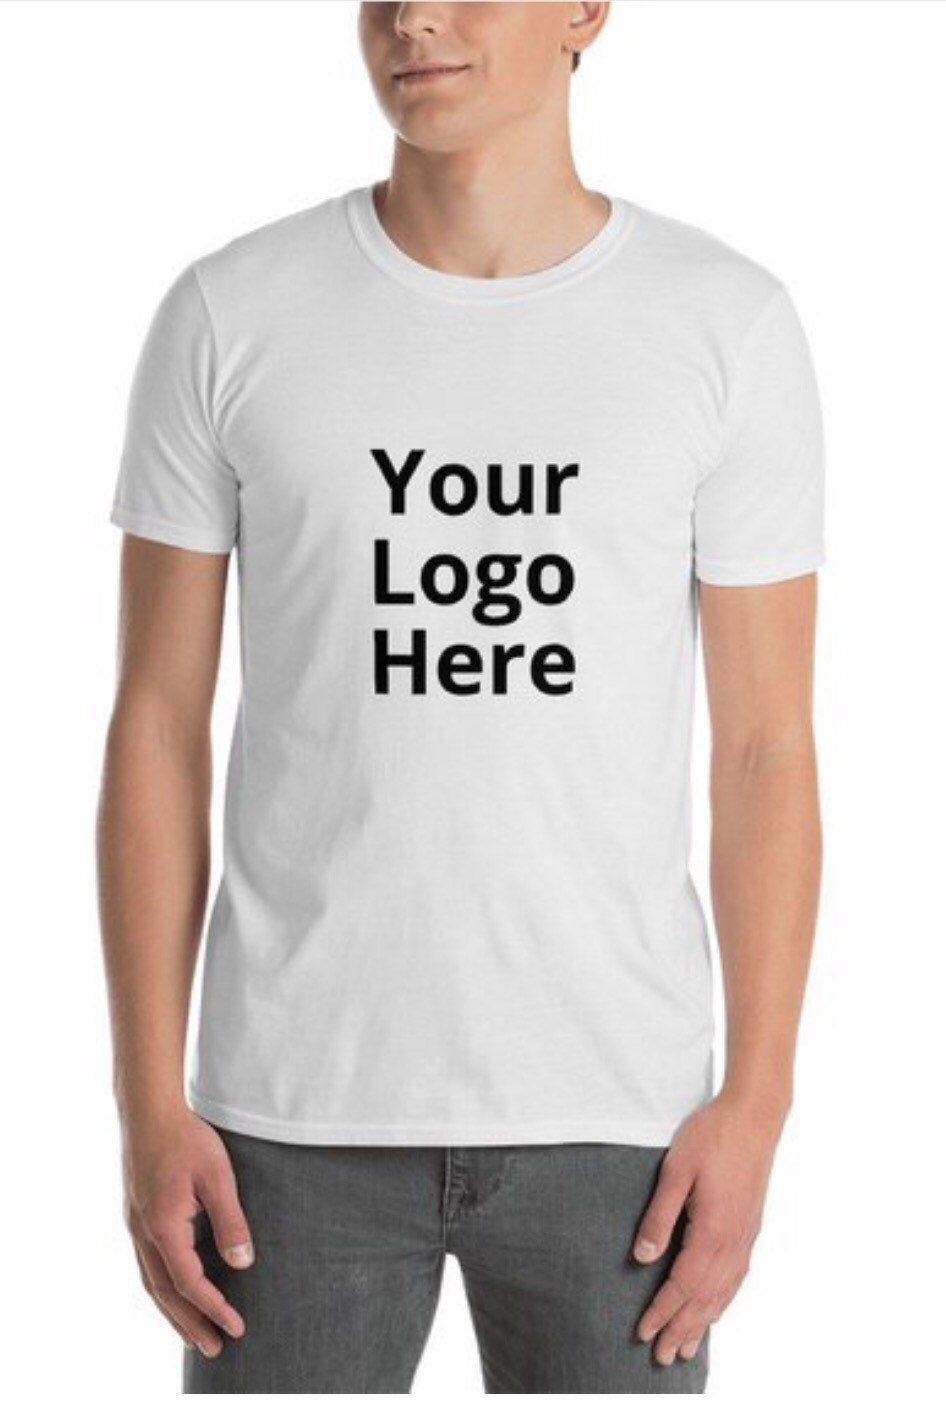 9f412350 Excited to share the latest addition to my #etsy shop: Custom Personalized  T Shirt with Your image, picture, logo or print. Design your own shirt for  ...